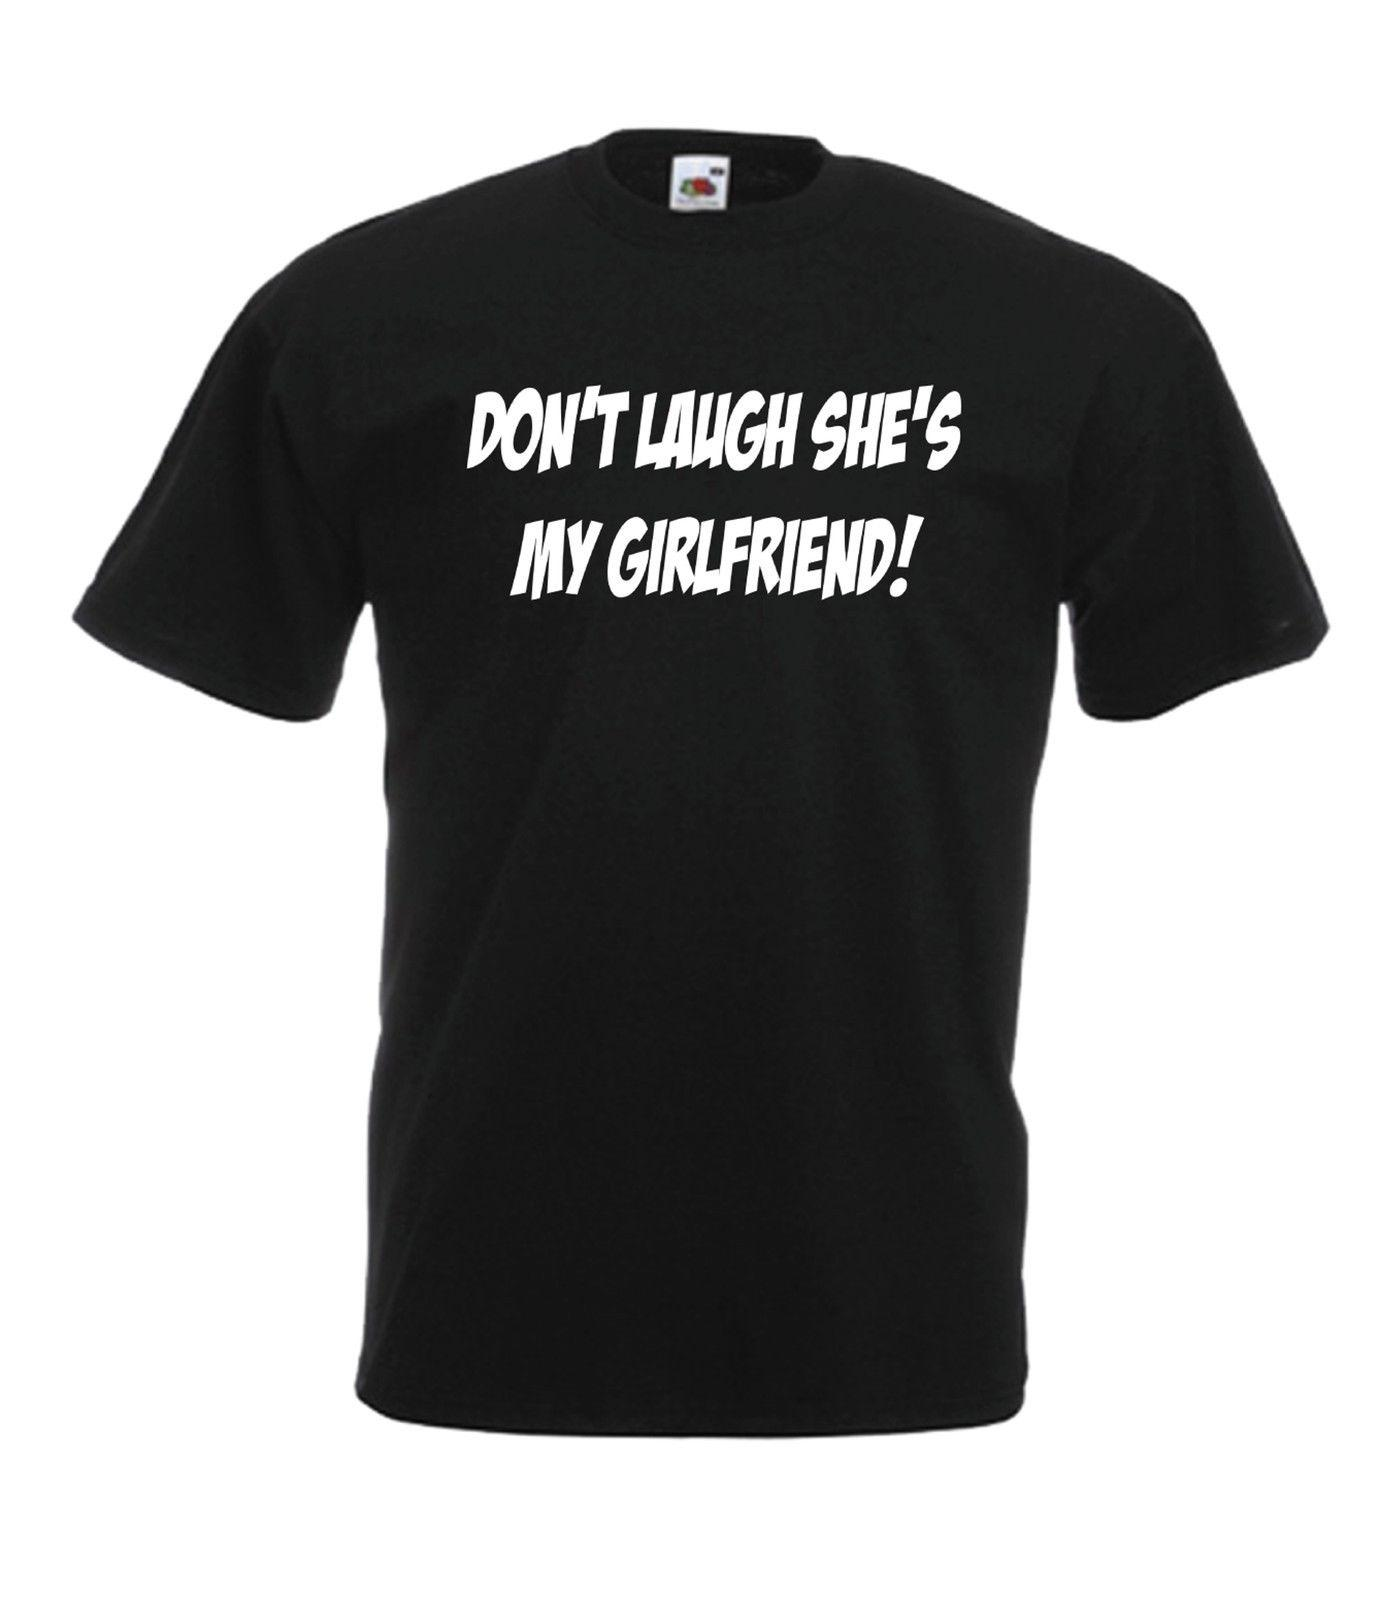 SHES MY GIRLFRIEND Funny Wedding Xmas Birthday Gift Ideas Mens Womens T SHIRT Short Sleeve Plus Size Shirt Awesome Design And Tshirt From